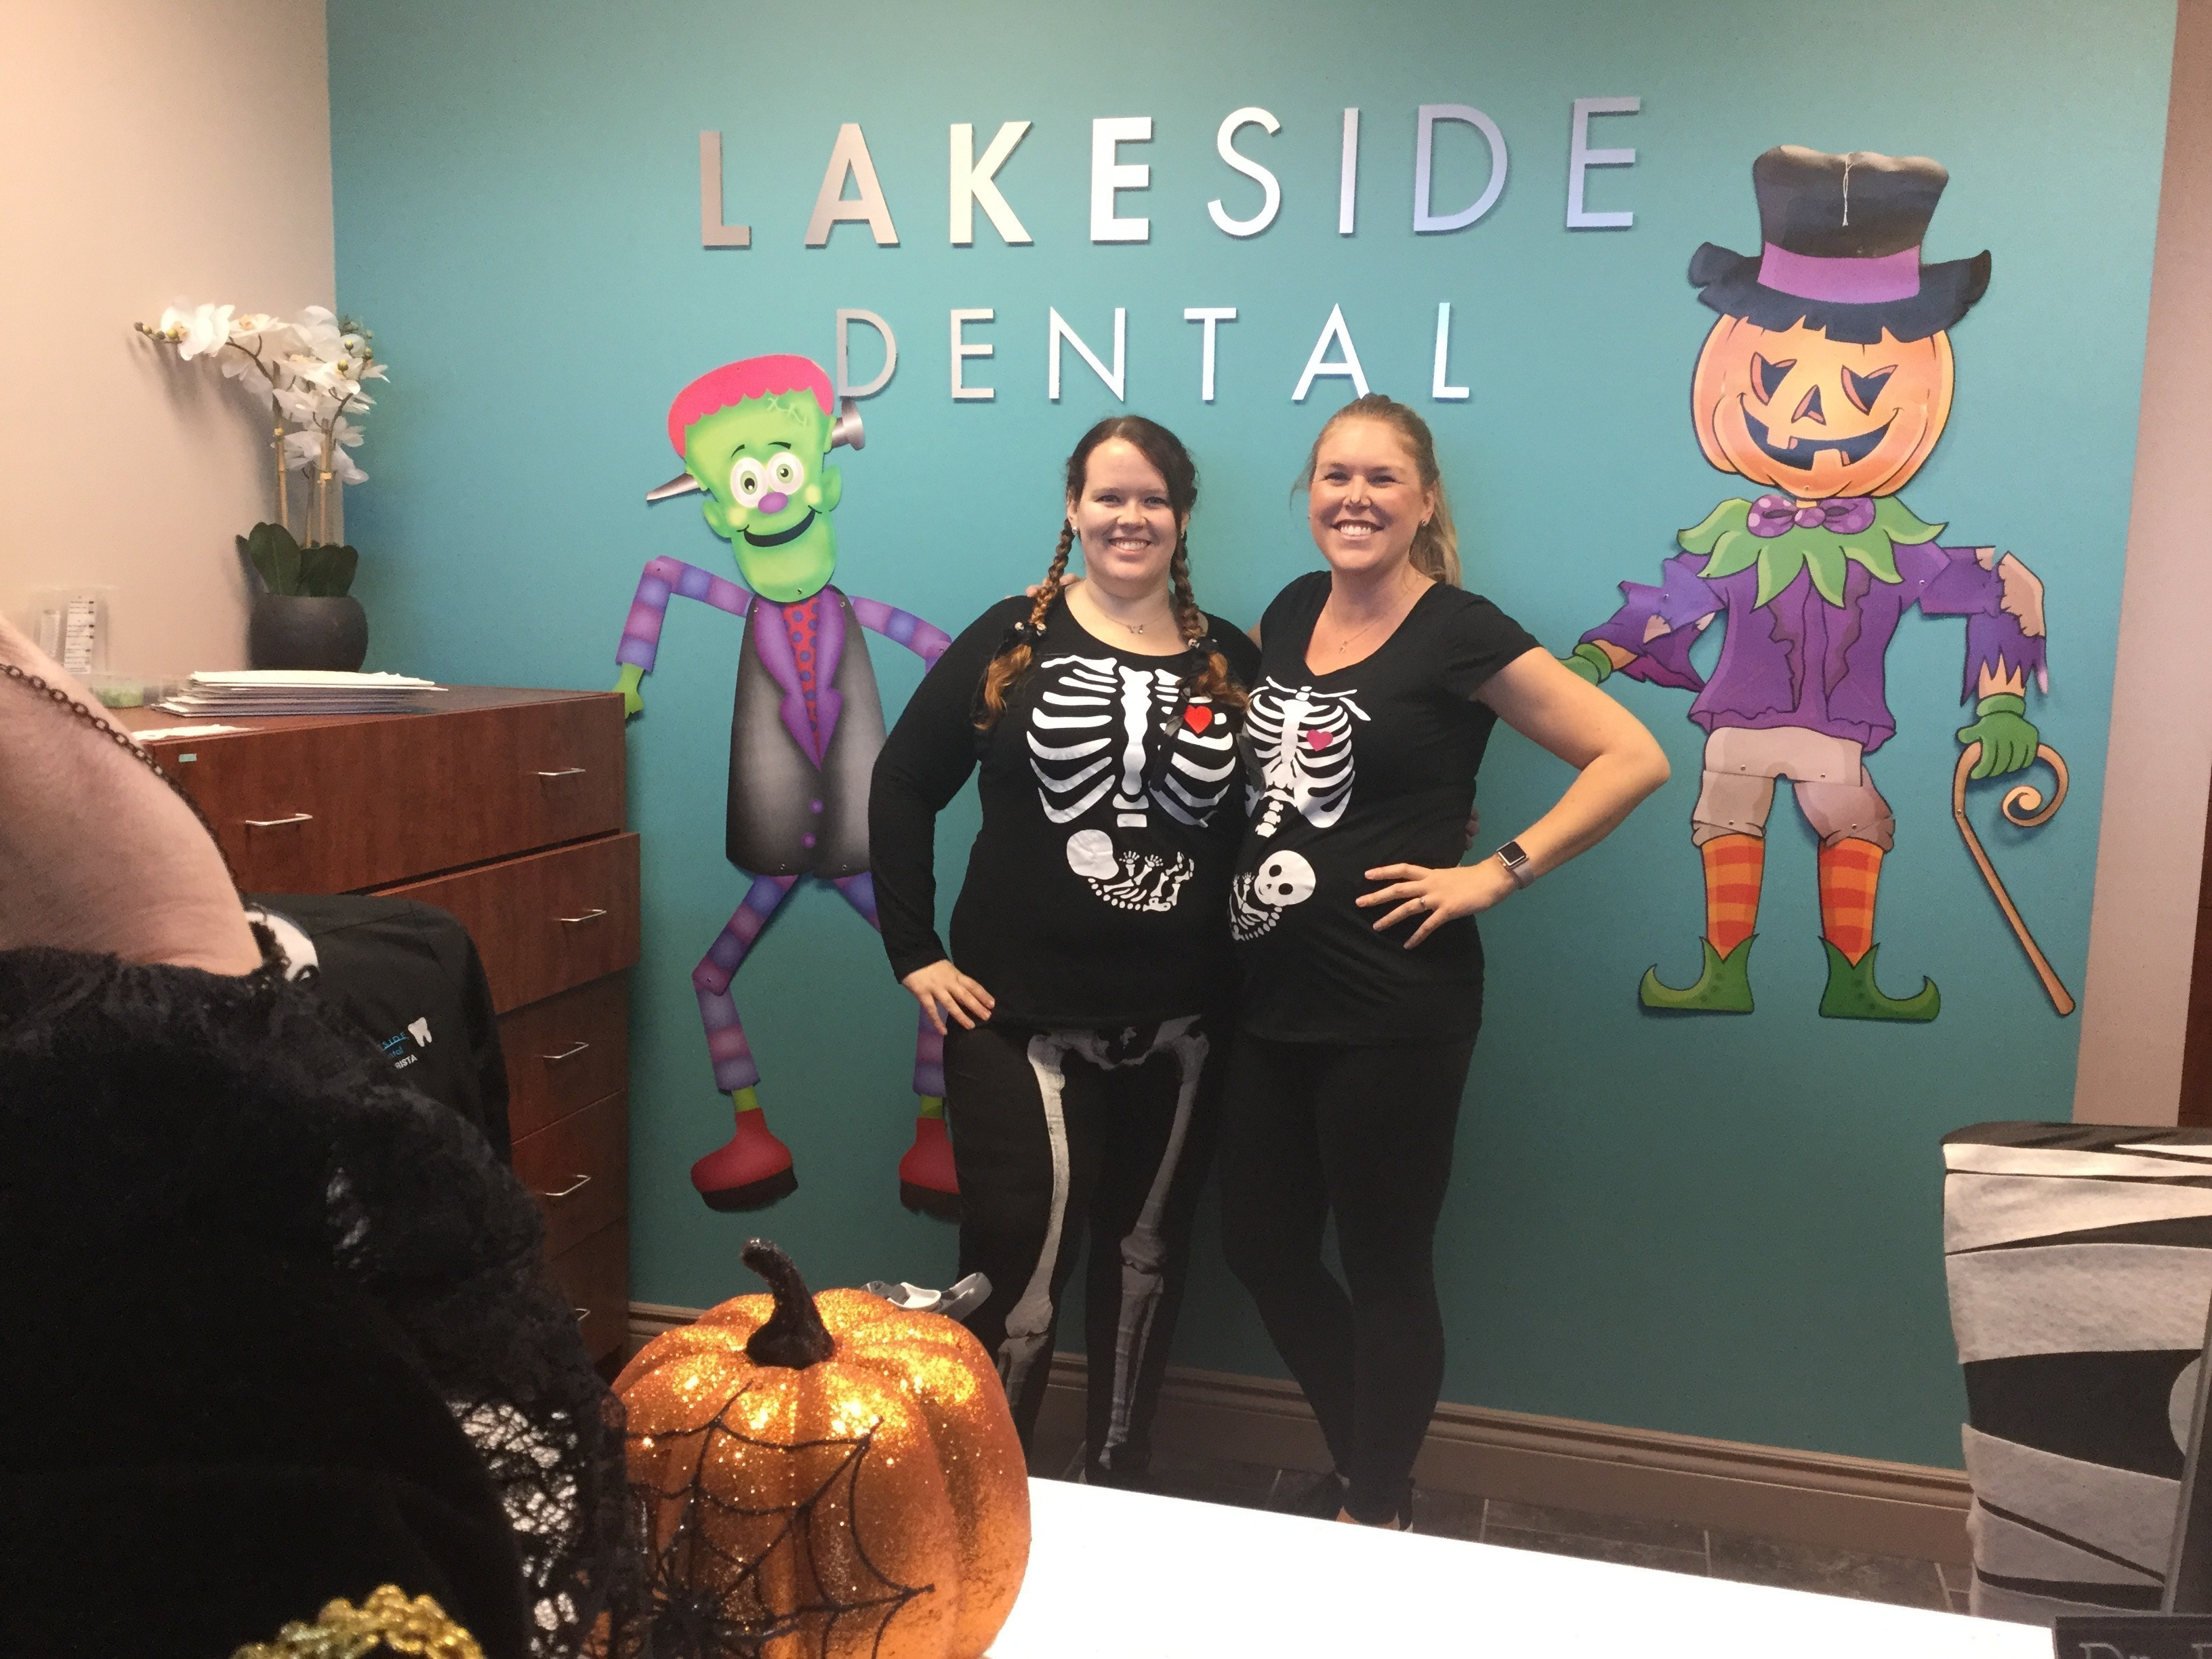 Lakeside Dental is expanding in 2020!